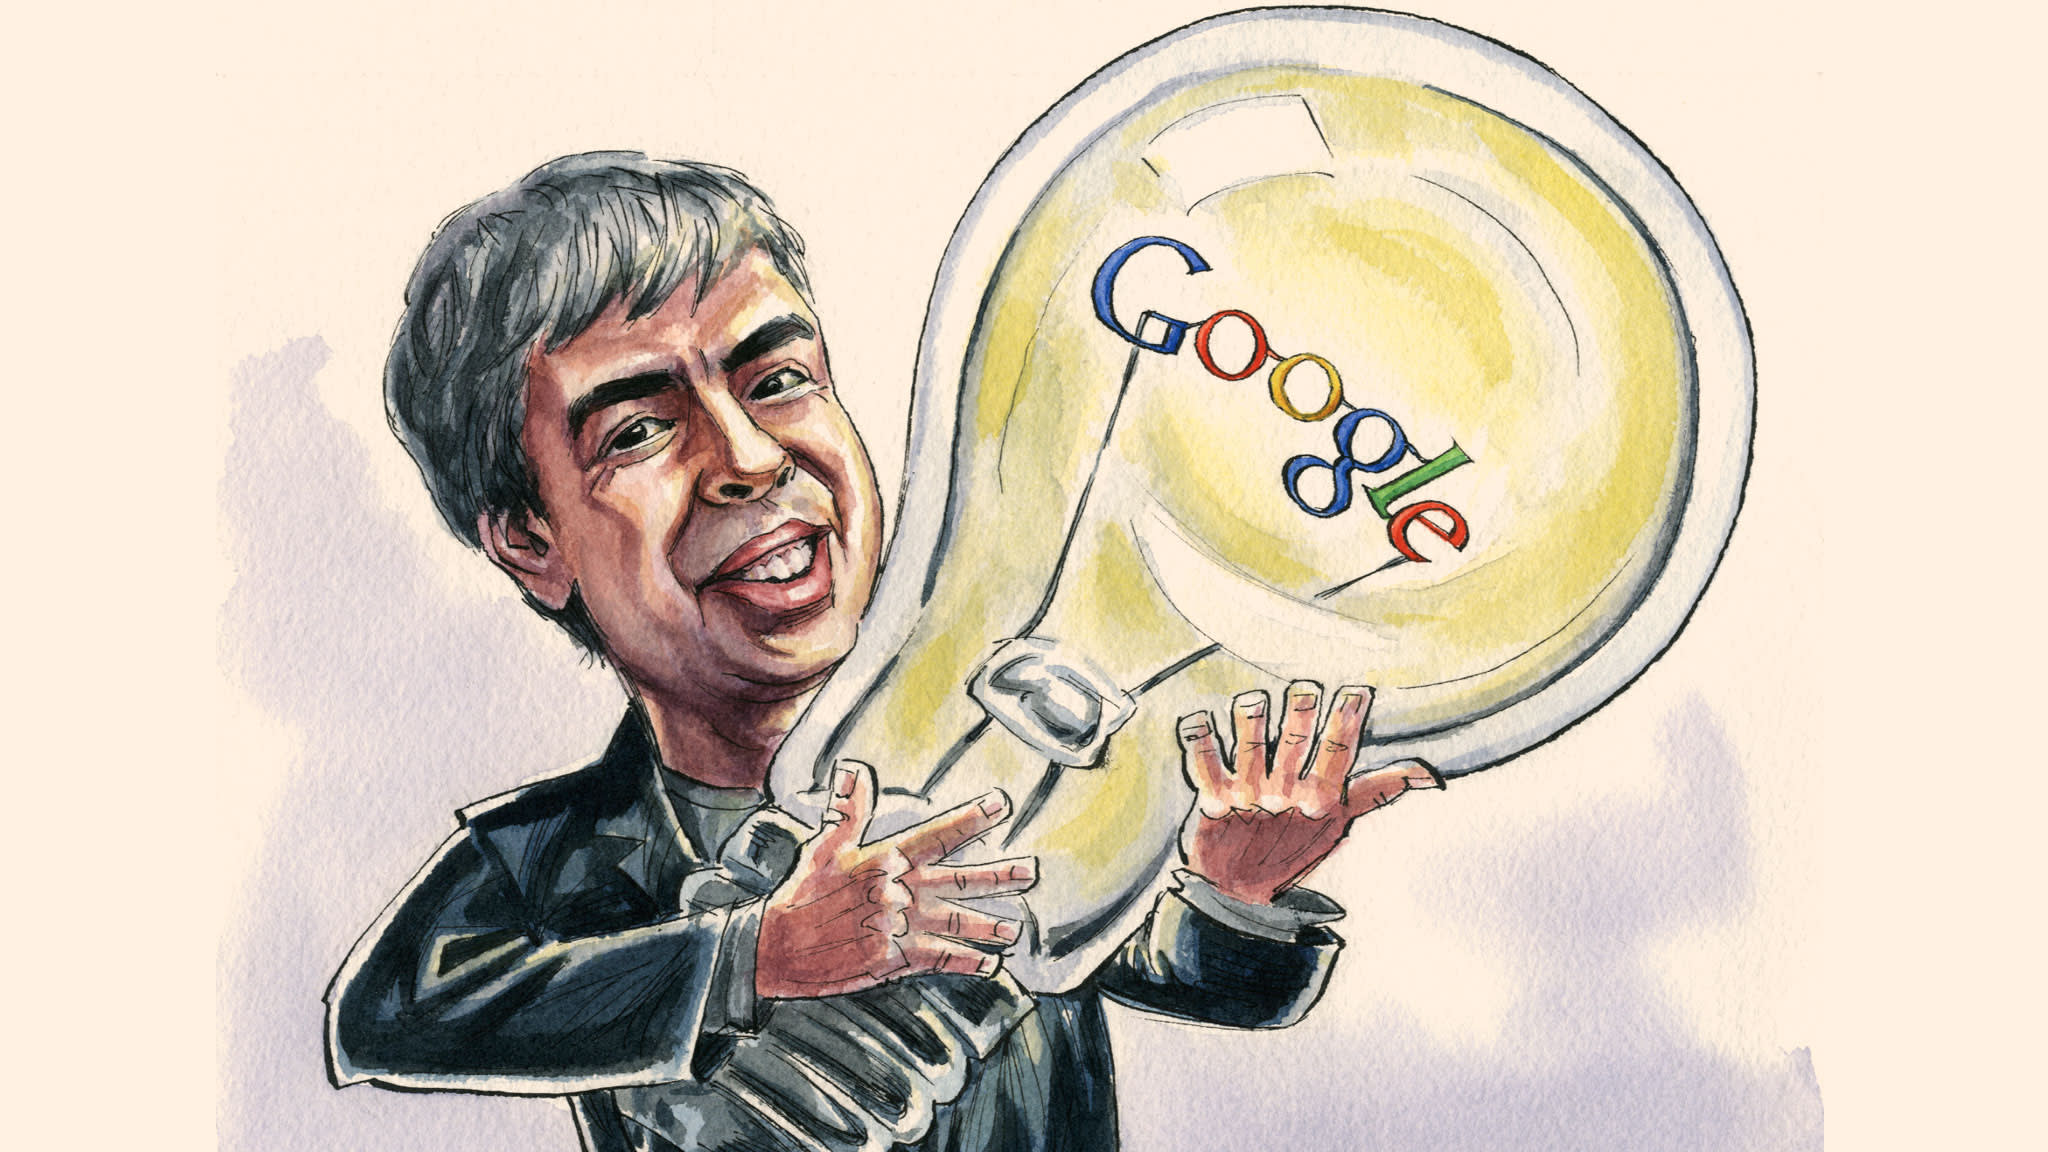 Google is the General Electric of the 21st century | Financial Times